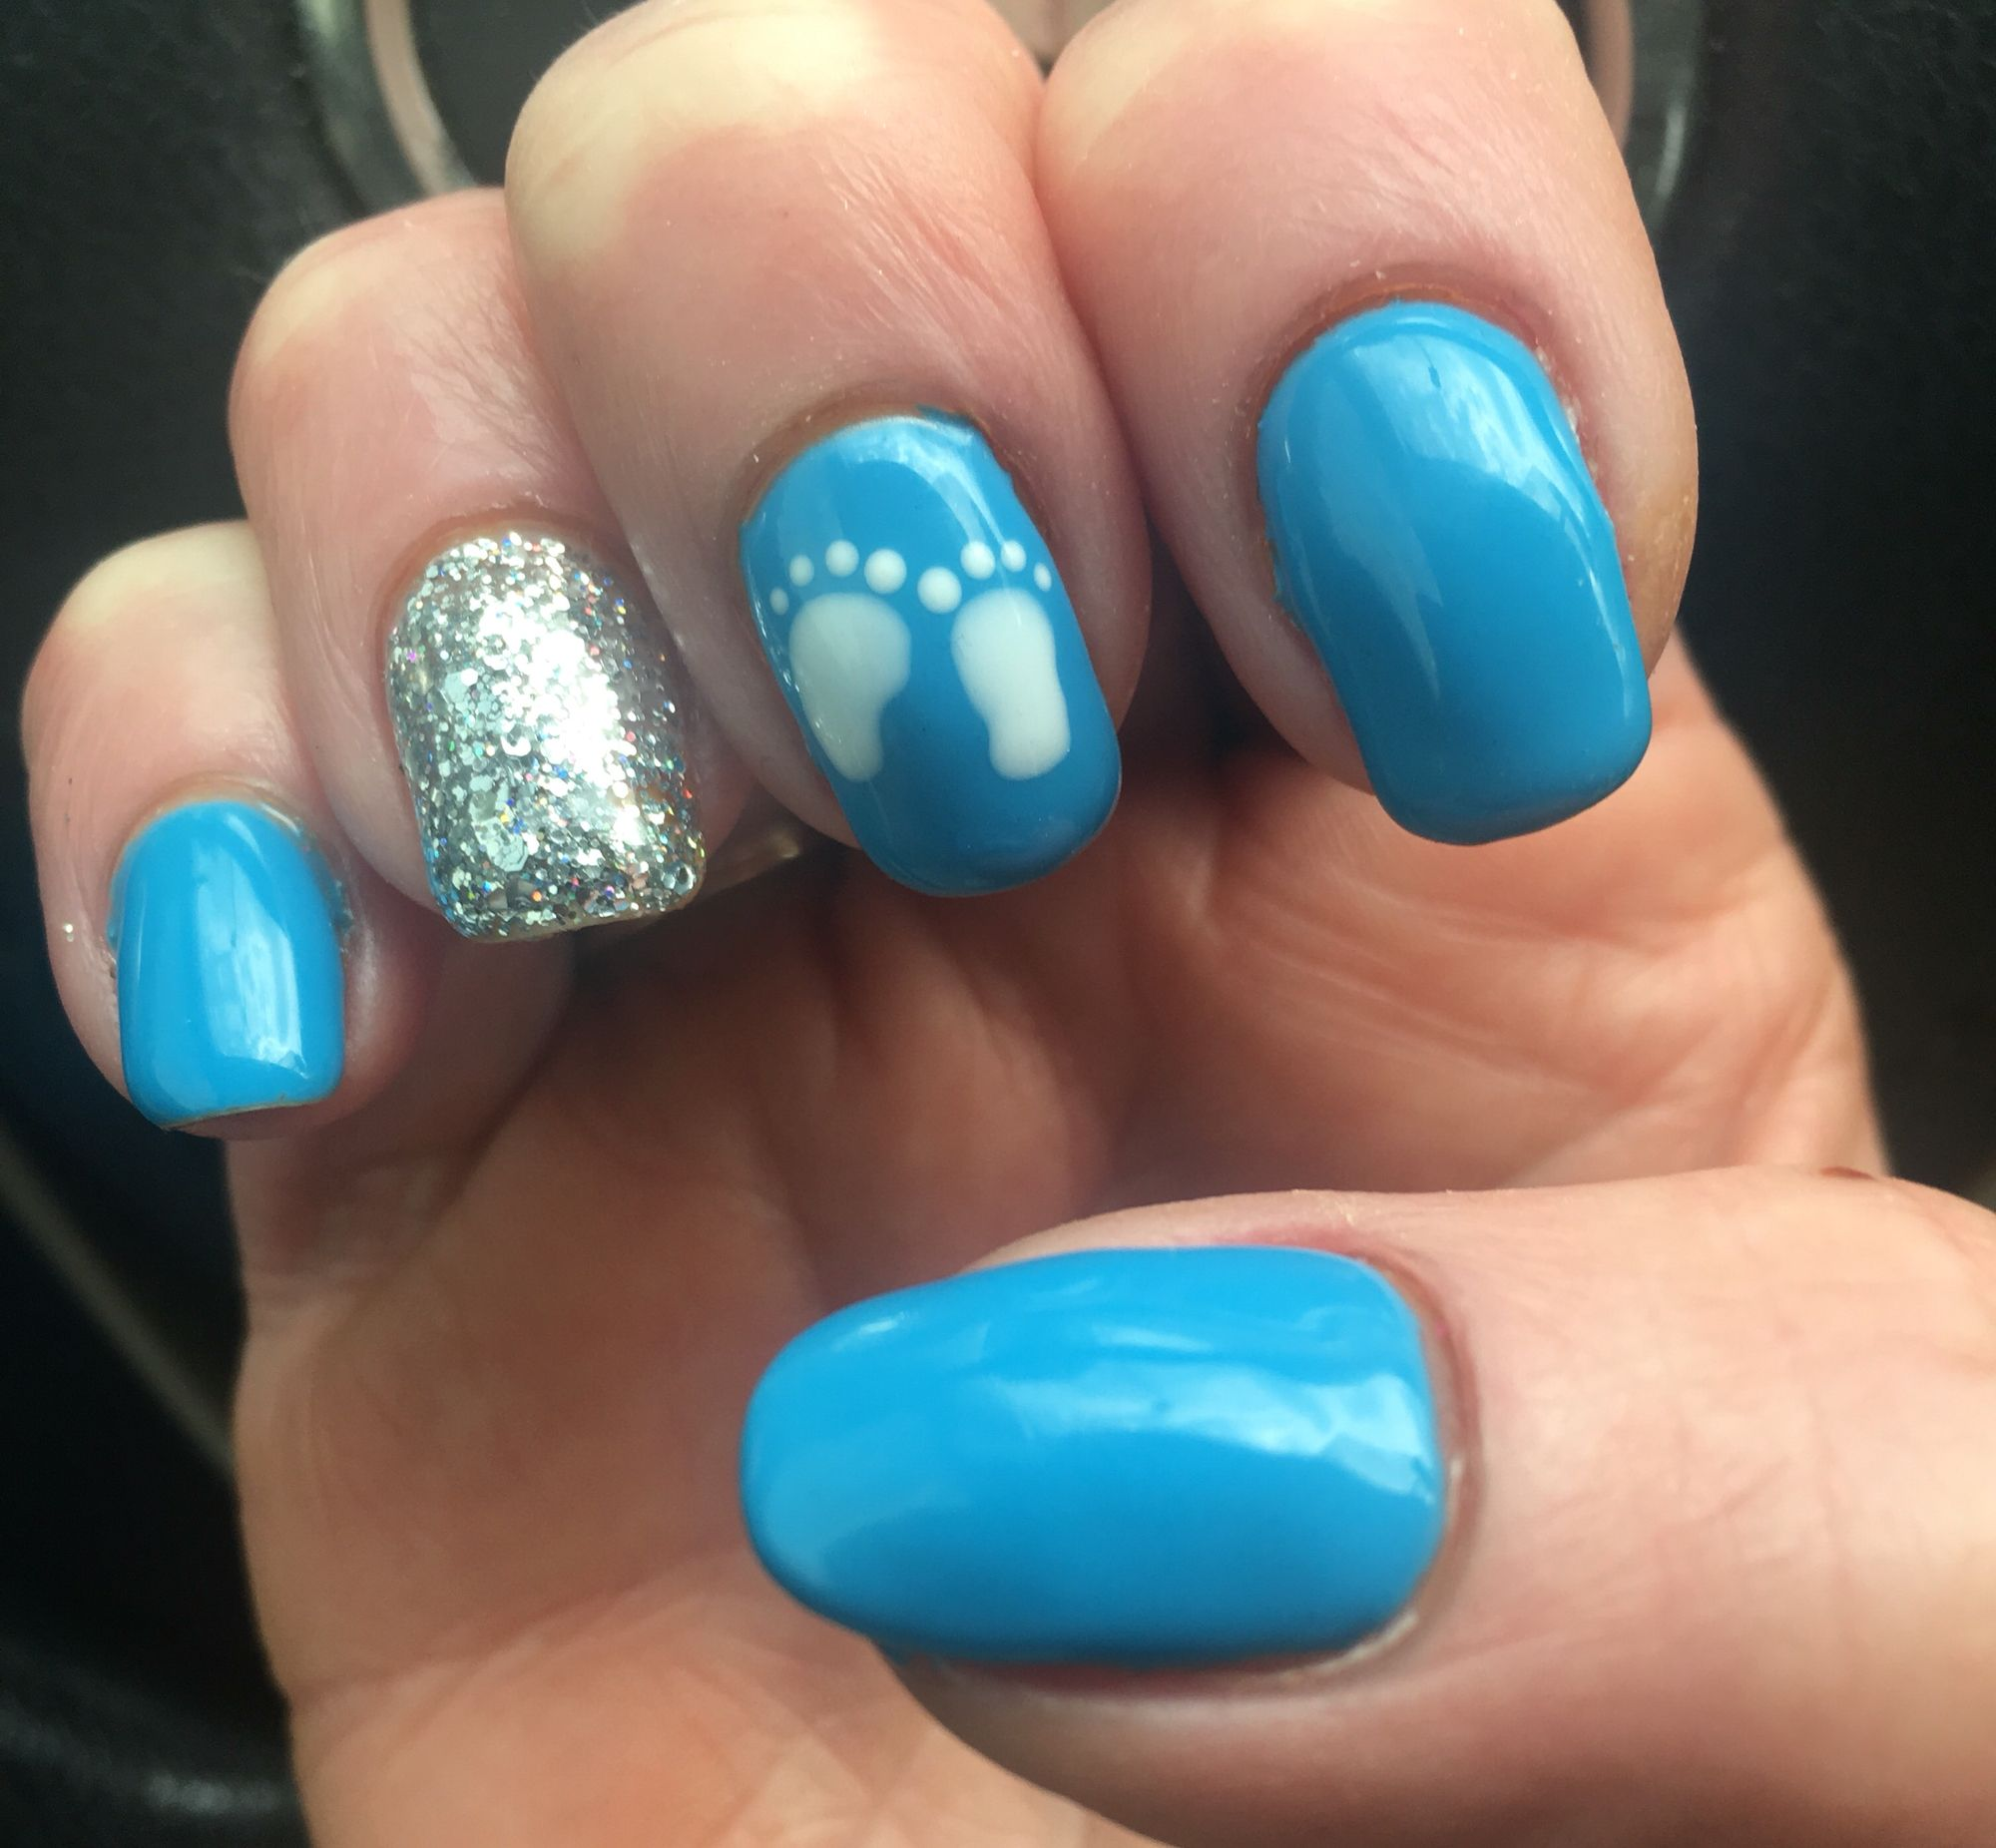 Pin By Darbi Youngblood On Beauty Manicures Pedicures Nail Art Baby Shower Nails Baby Nails Baby Shower Nails Boy